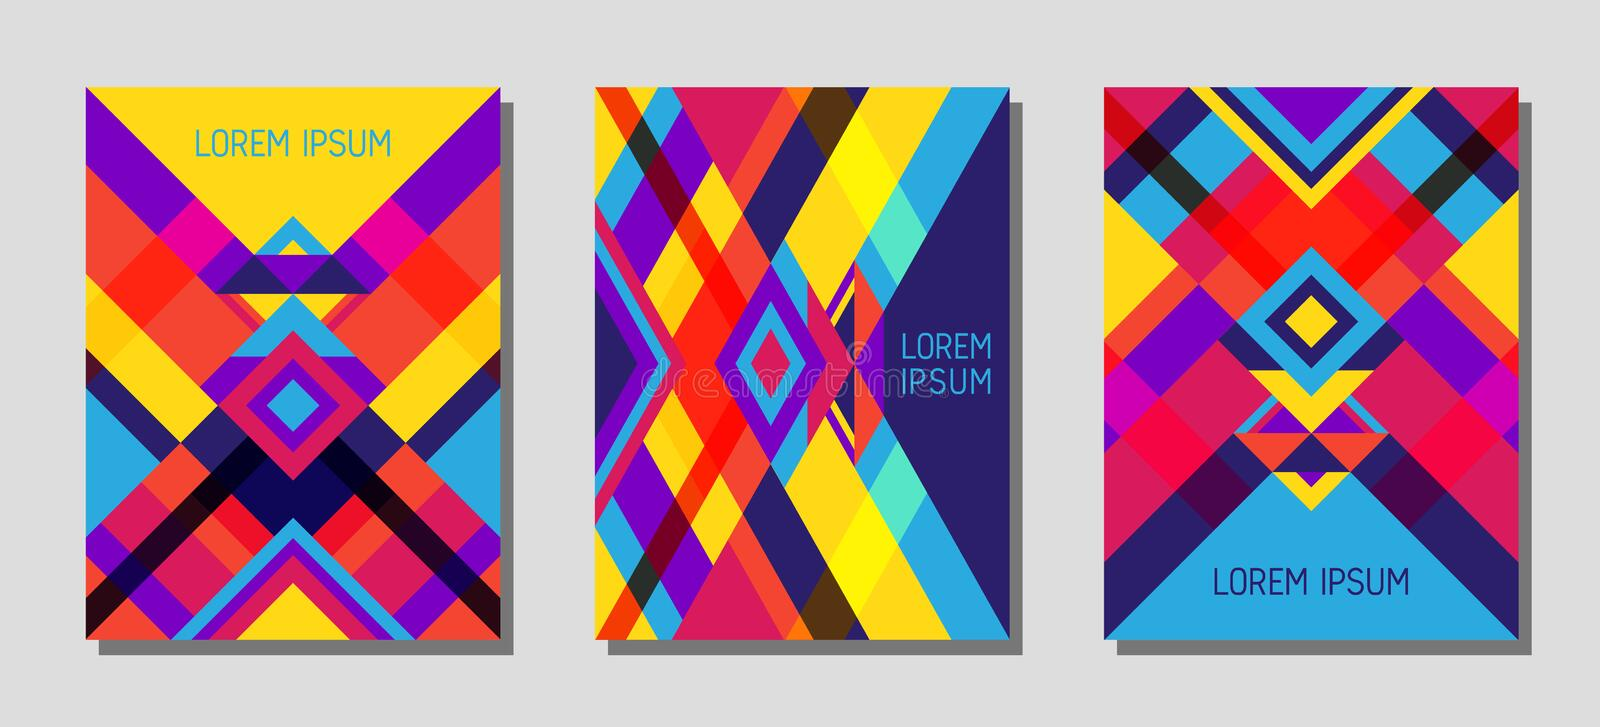 Cover page layout vector template geometric design with triangles and stripes pattern in red blue yellow violet. Collection of cover page layouts, vector vector illustration